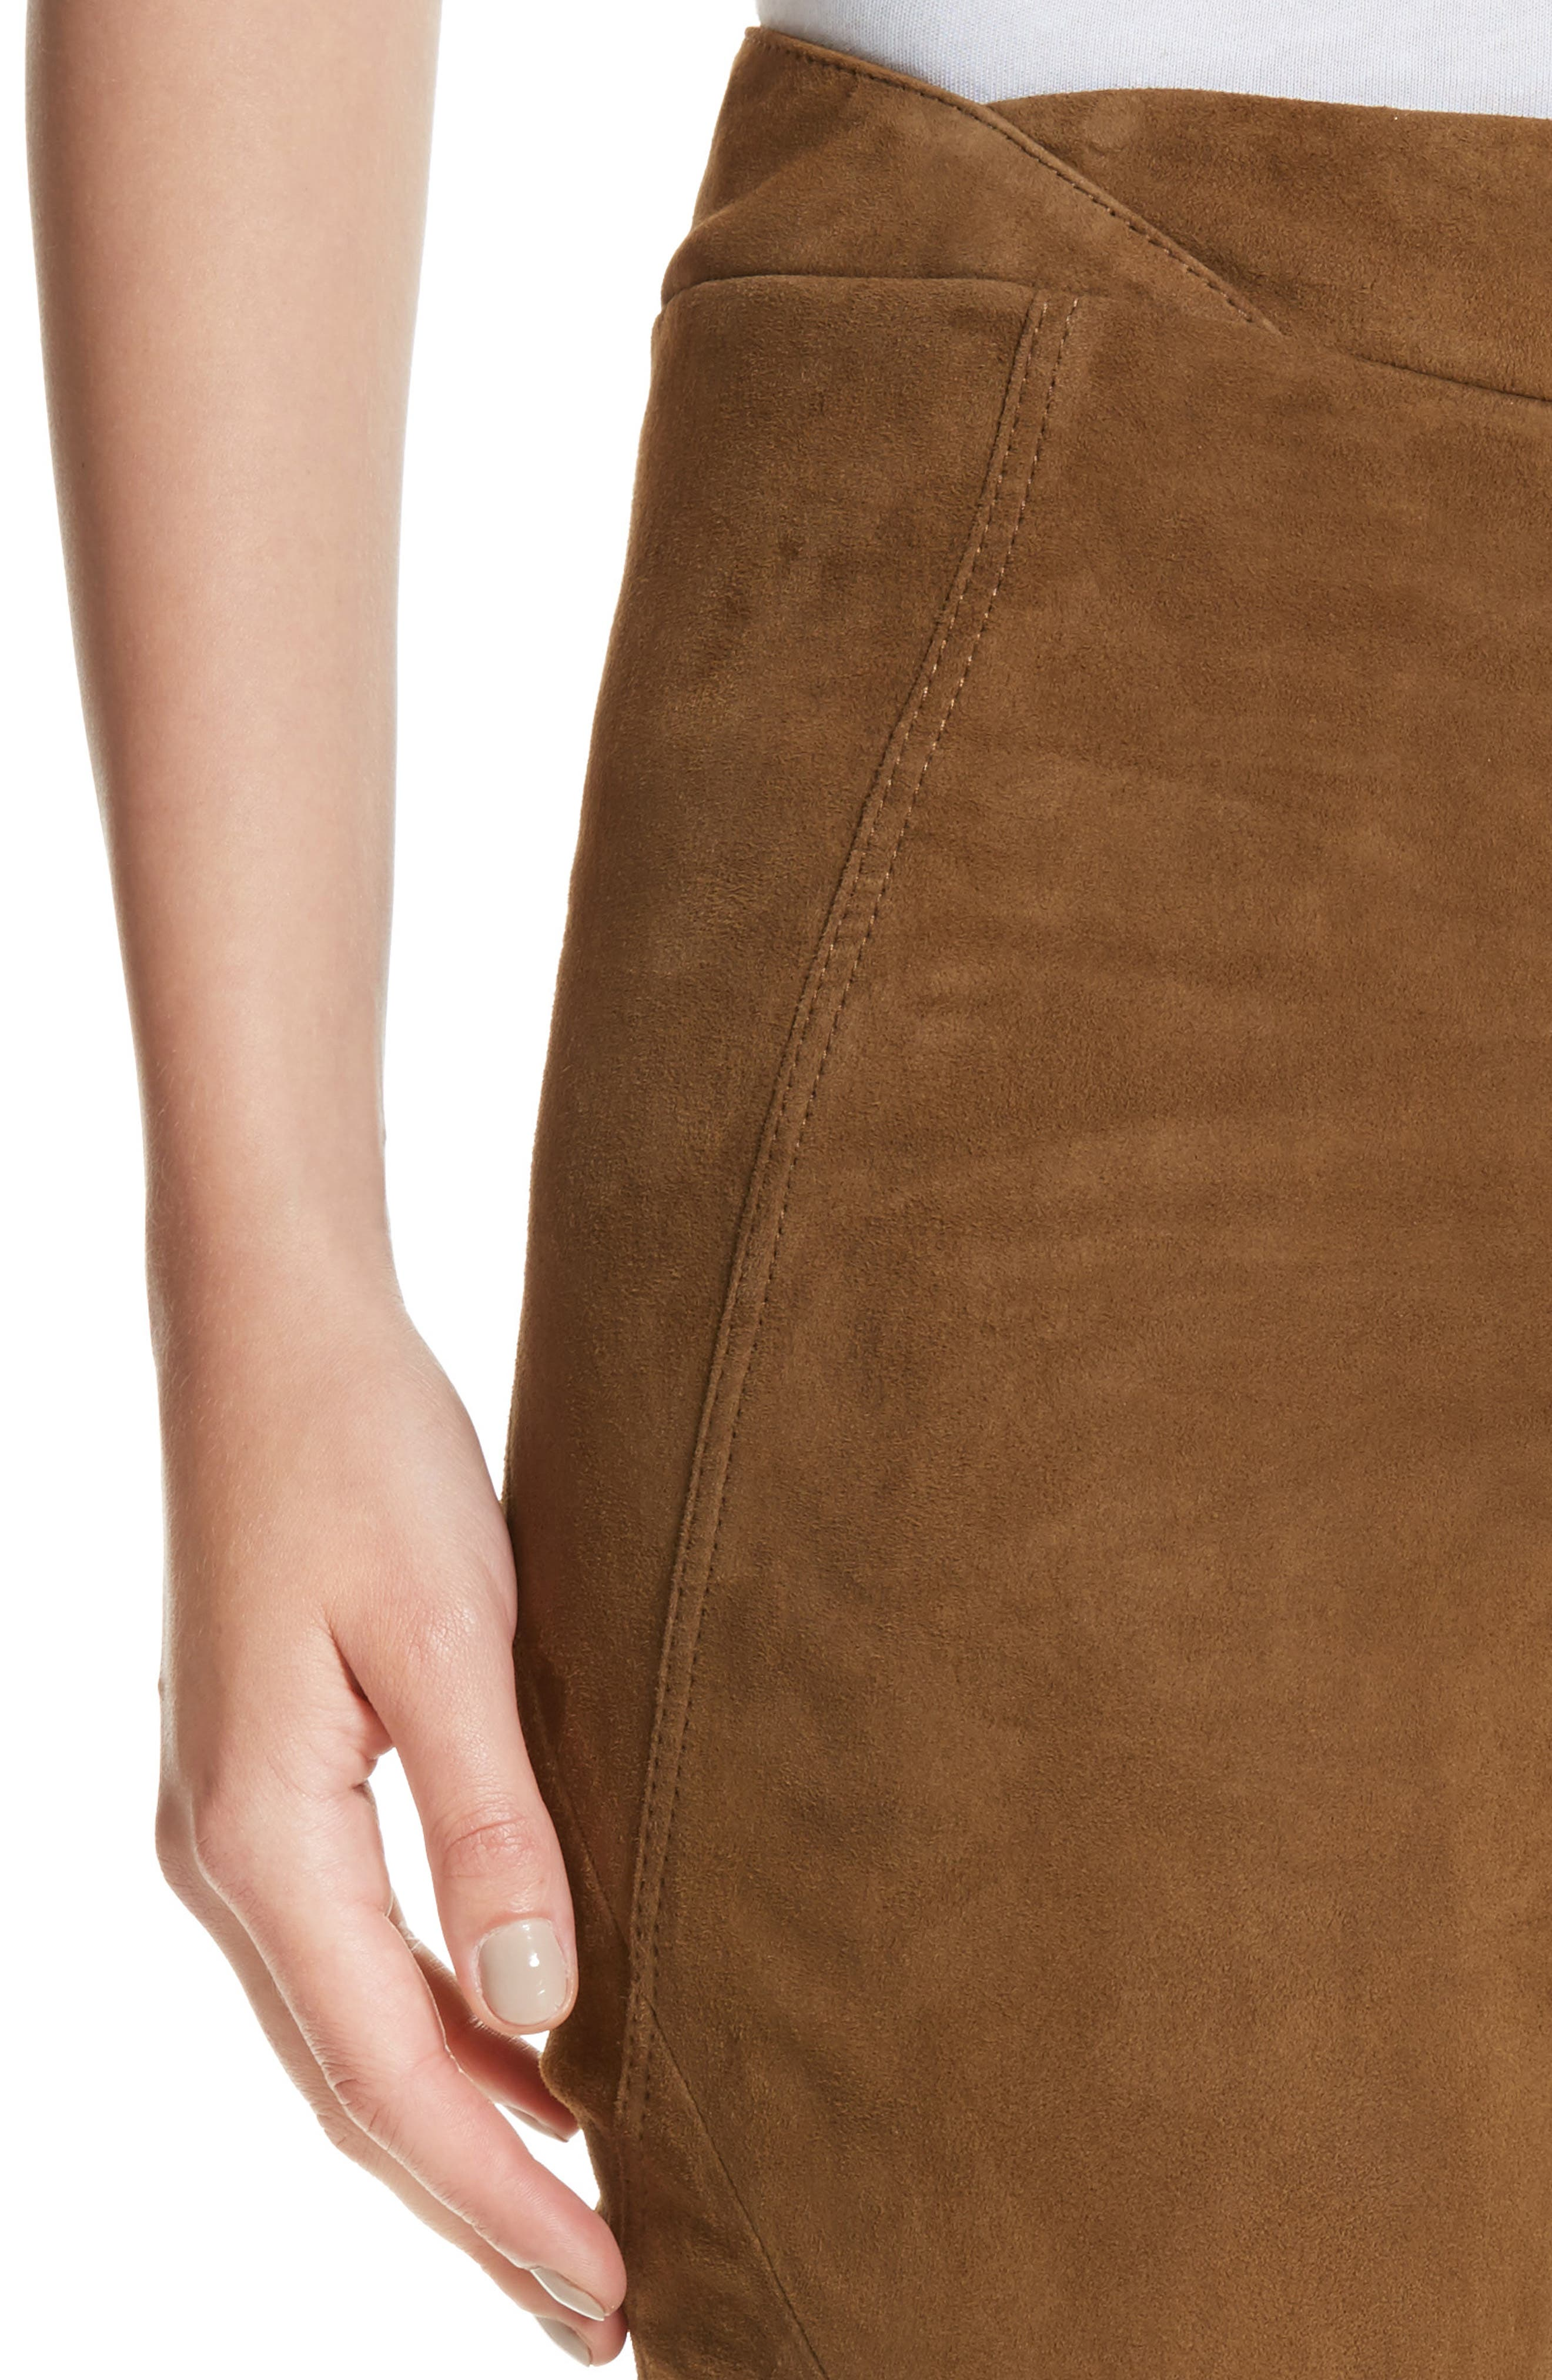 Brooklyn Suede Pants,                             Alternate thumbnail 7, color,                             Sequoia